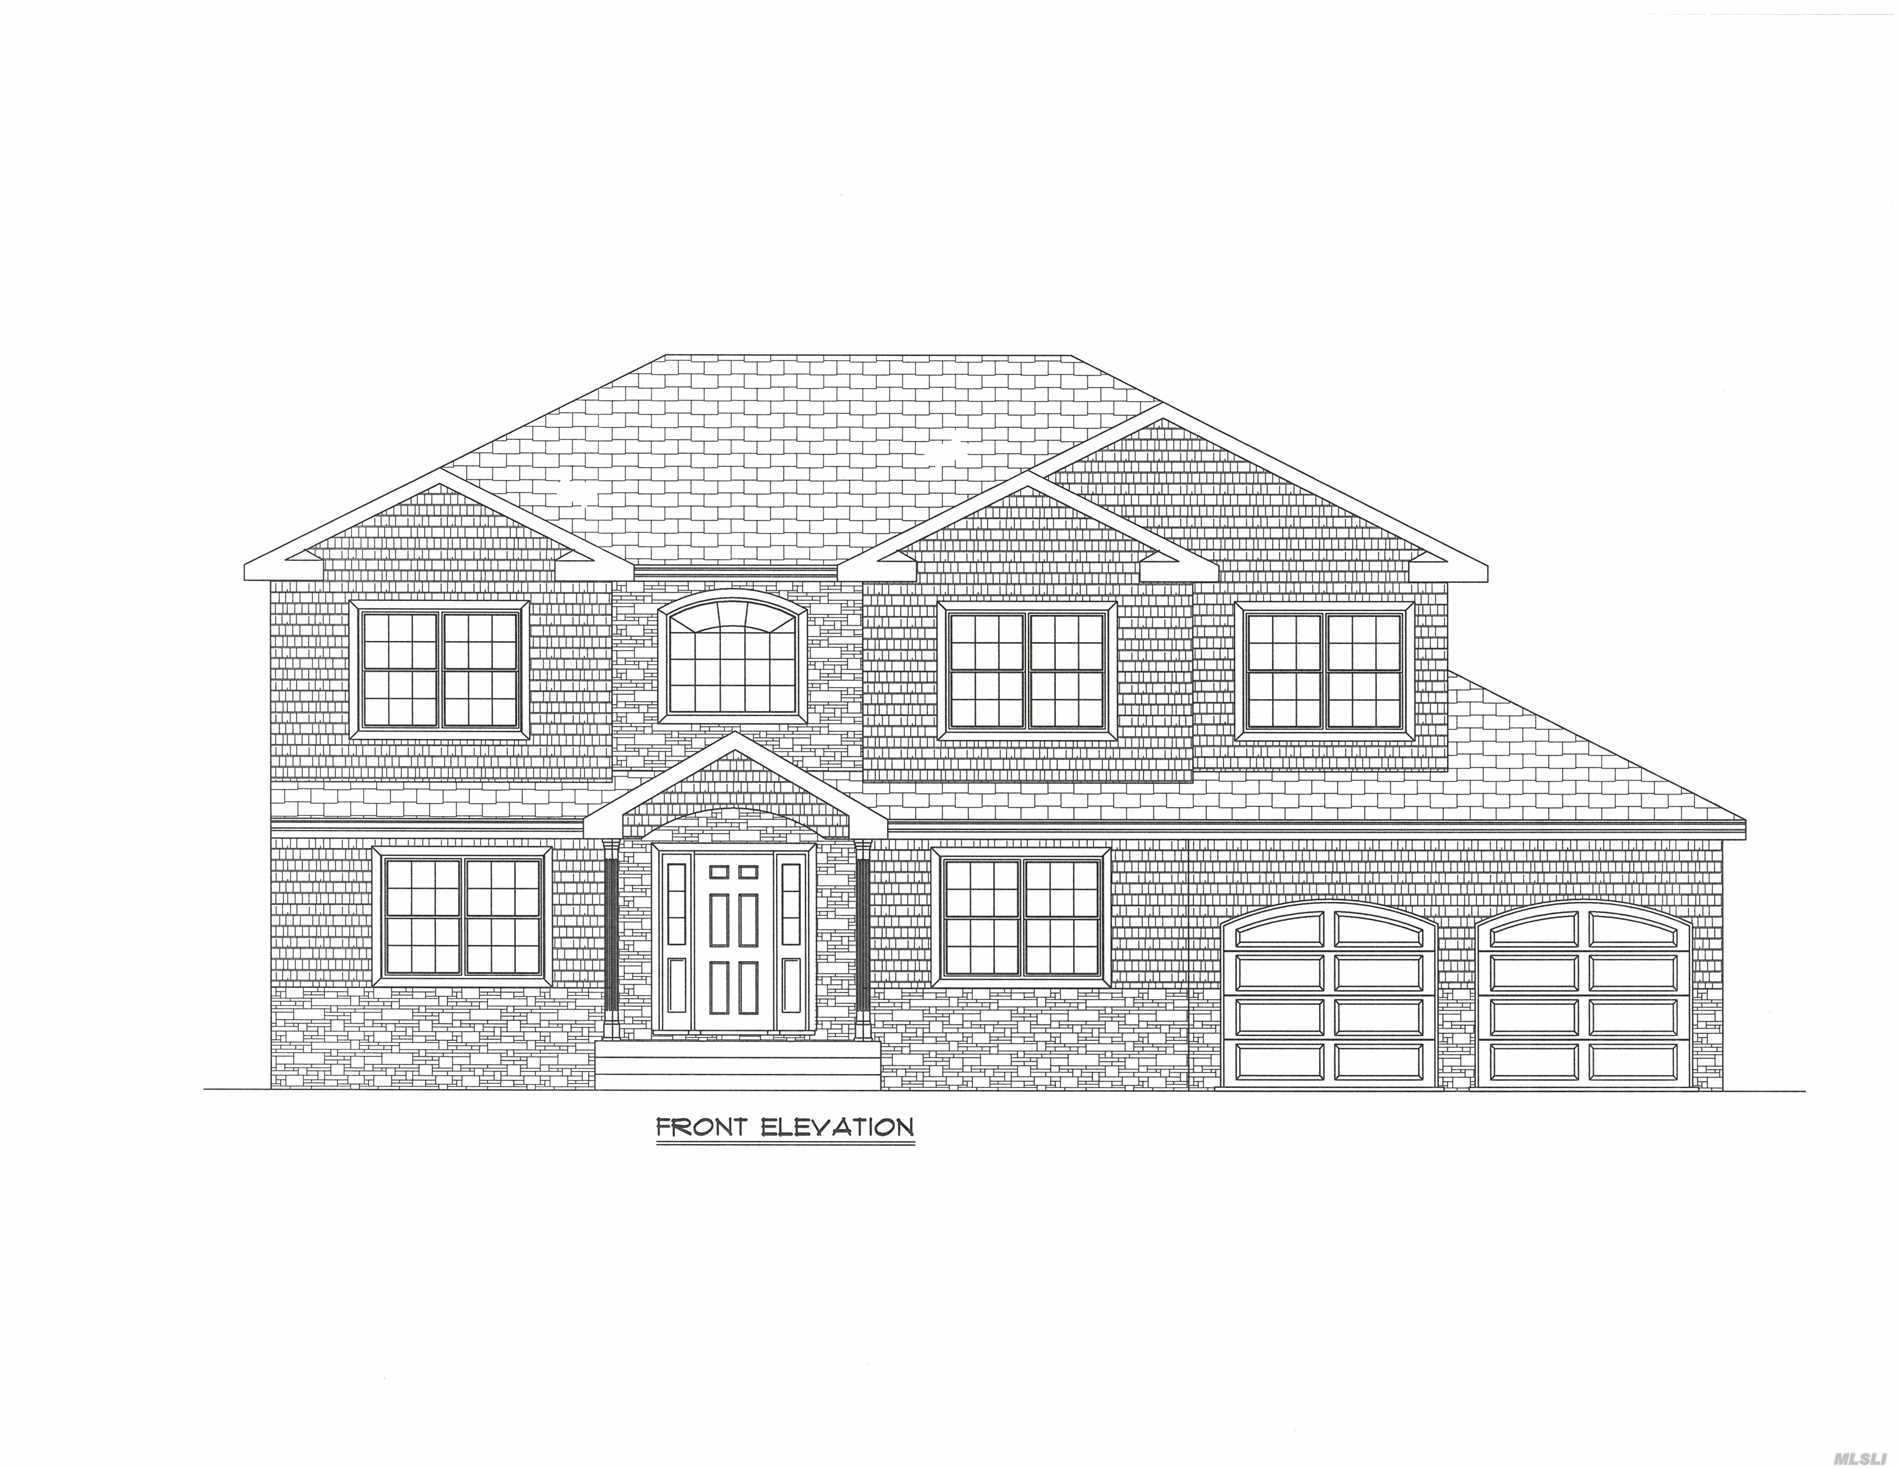 Incredible New Construction In Jericho To Be Built!Over 3700 Sq Ft Facing East!Quality Throughout This 5 Bdrm/4.5 Bth Colonial Home W/Open & Spacious Floor Plan Featuring Two Master Stes Incl One On 1st Fl, Chef's Eik W/Gas Plus Warm & Inviting Great Rm W/Fpl!Oversized Backyd, Great For Entertaining!Robbins Ln Elem, Sw Middle.Time To Customize This Sensational Opportunity!